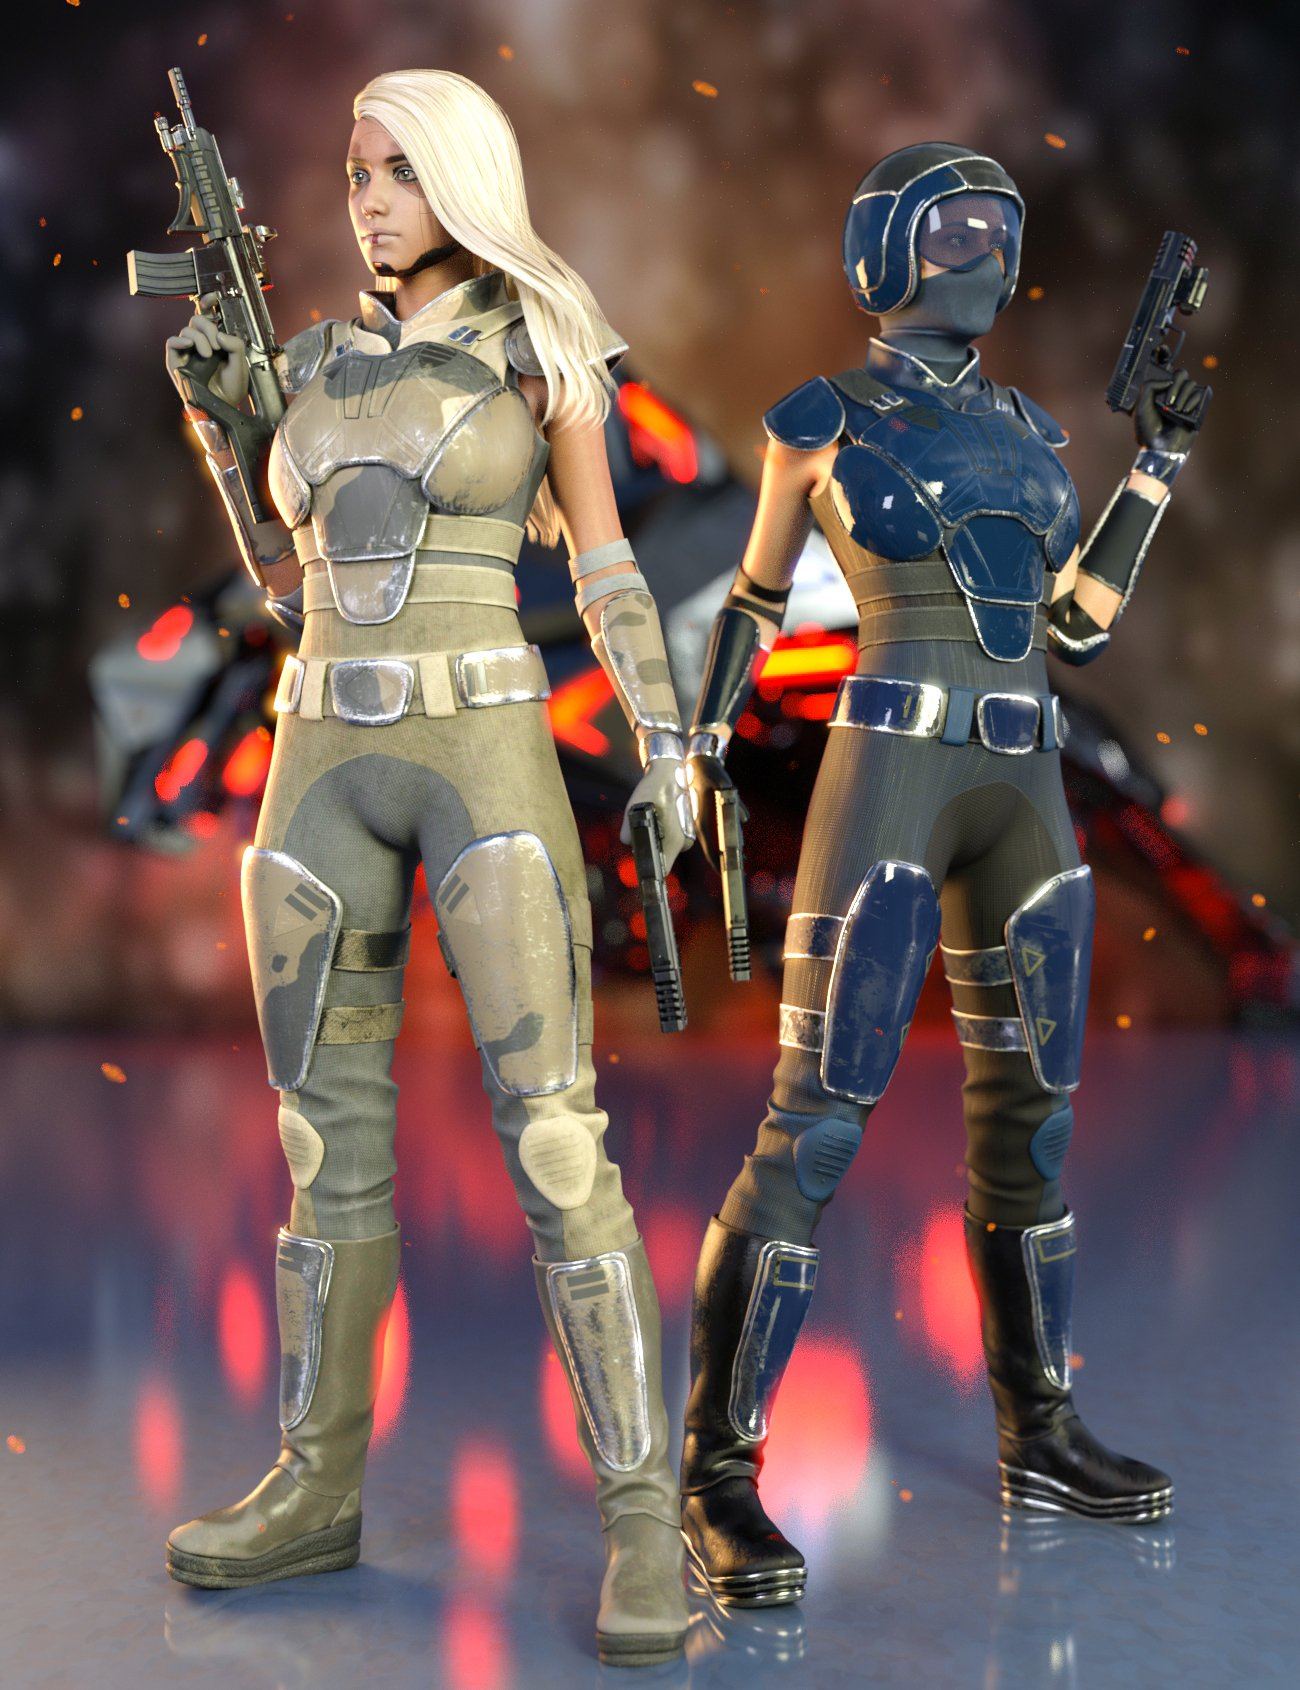 Sci-Fi Rebel Soldier Outfit for Genesis 8 Females by: Yura, 3D Models by Daz 3D